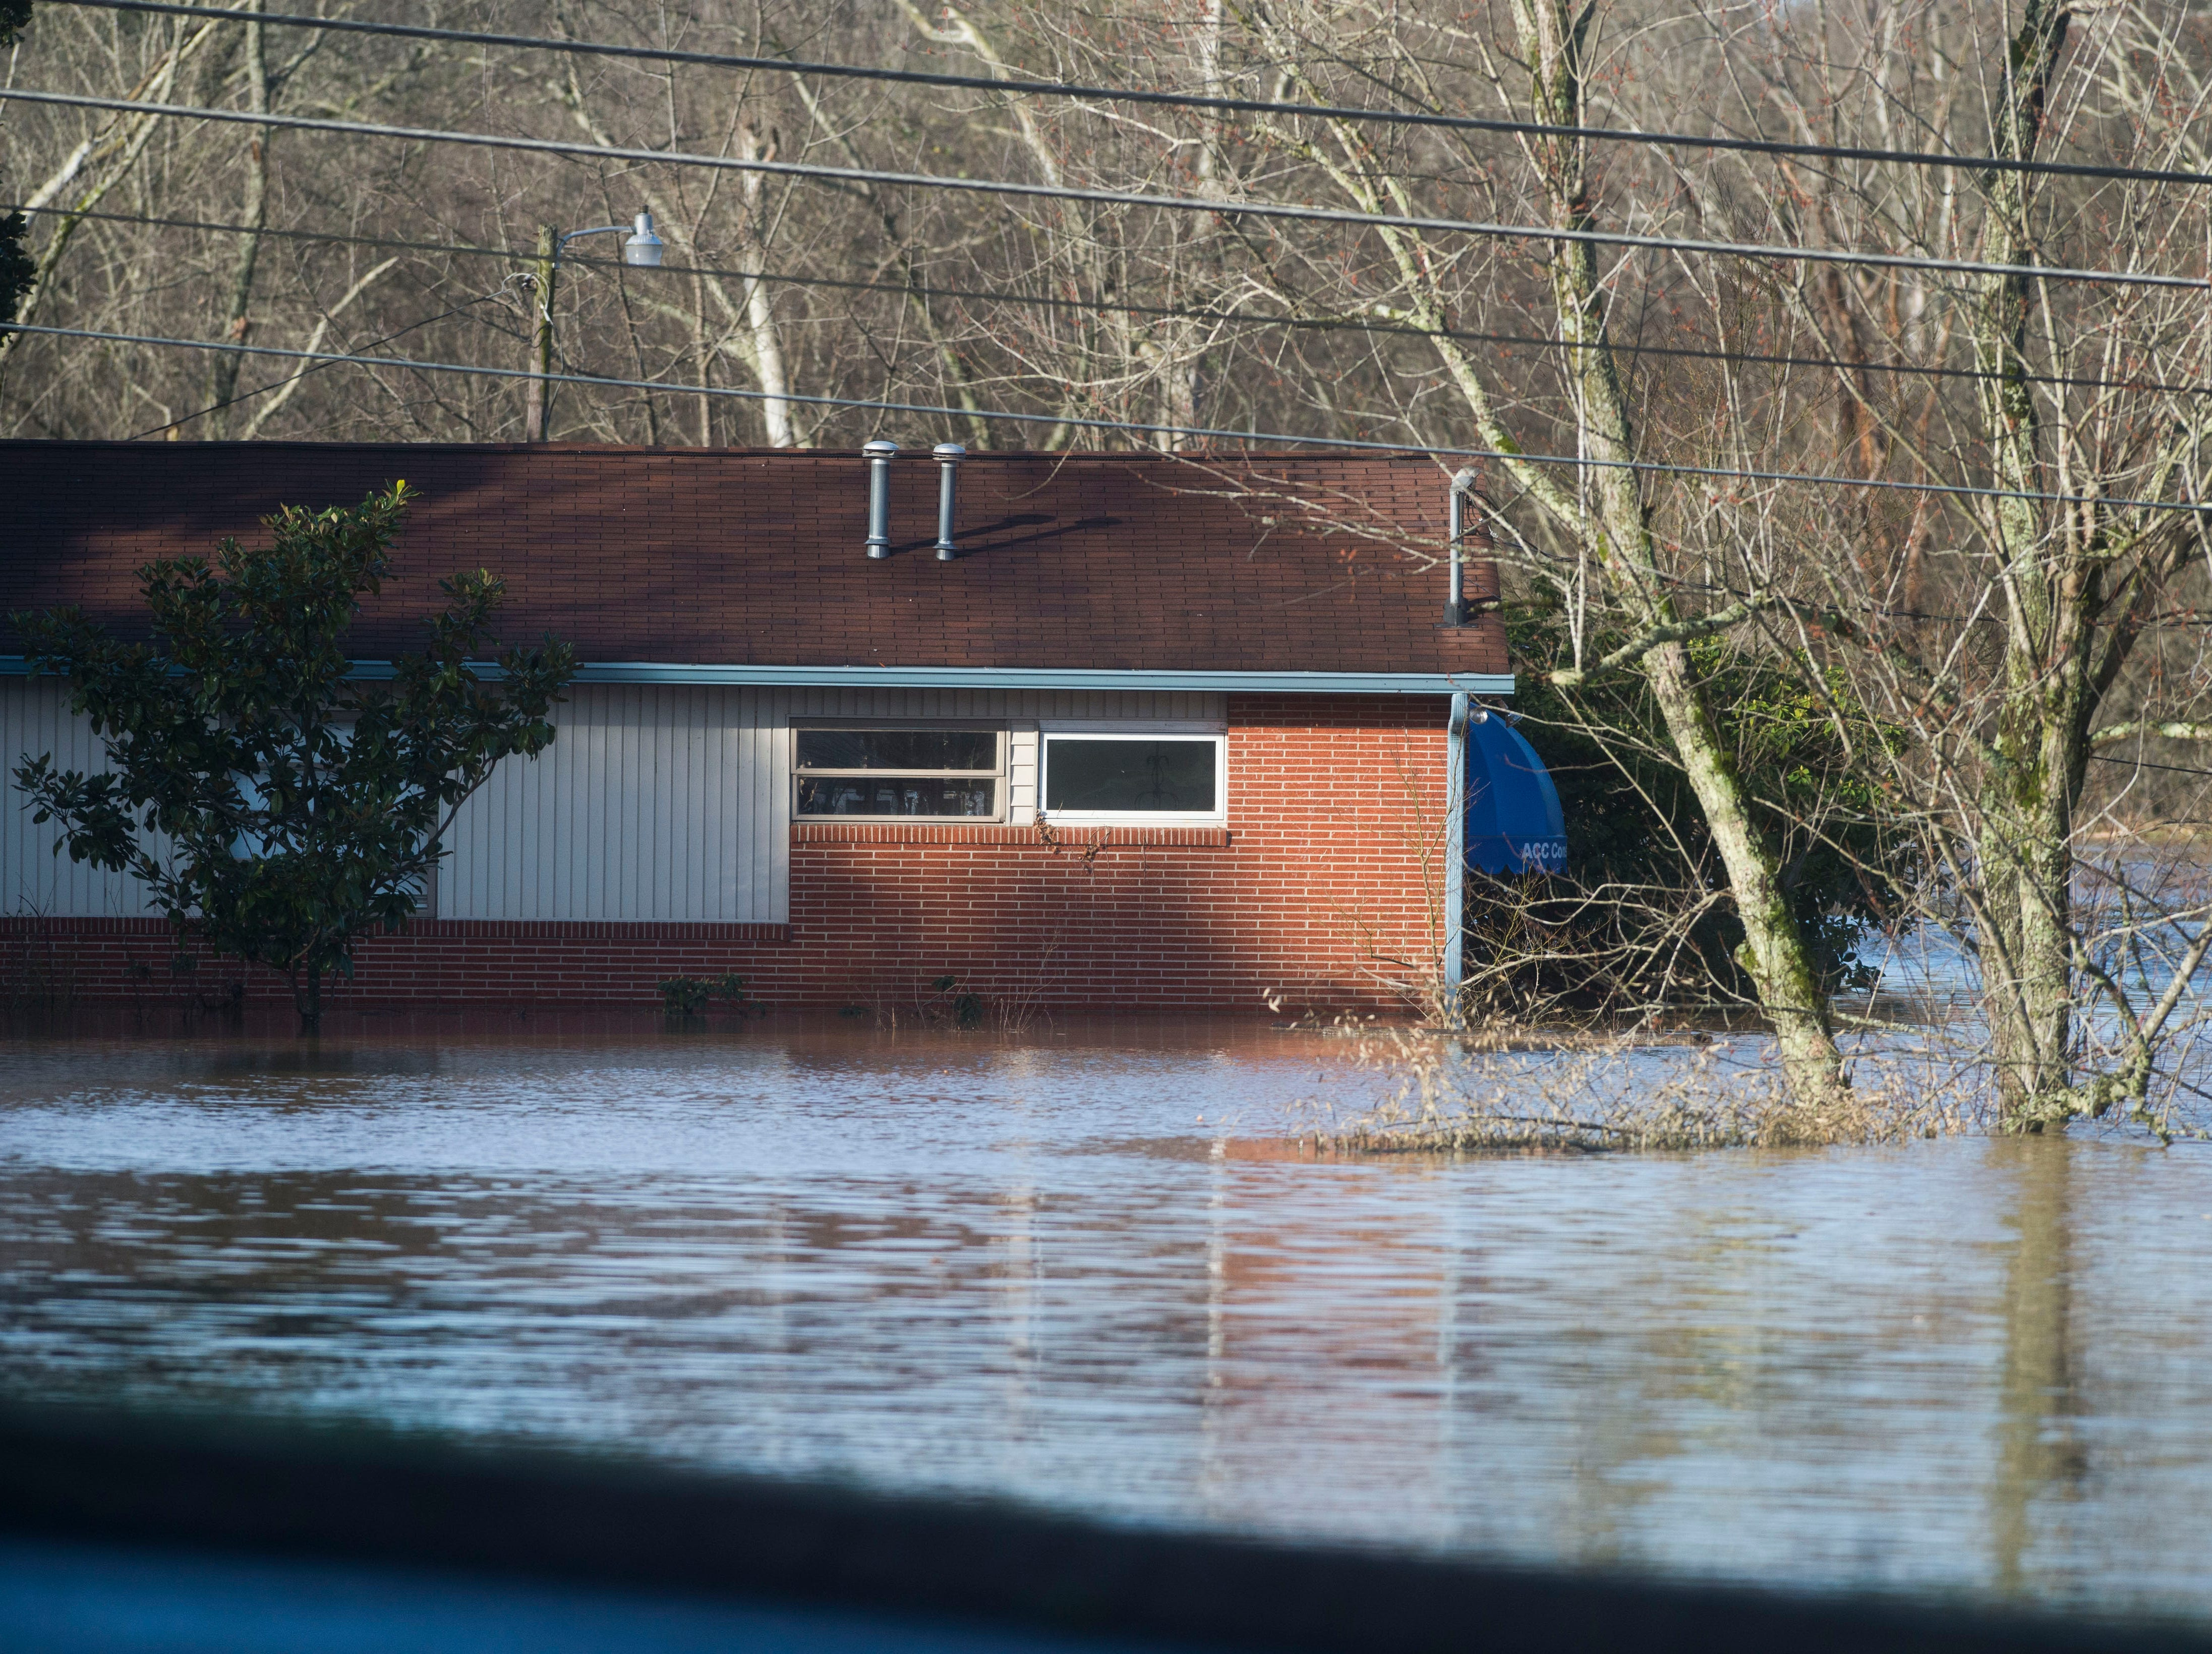 A flooded building on South Peters and Ebenezer Road in West Knoxville Sunday, Feb. 24, 2019.